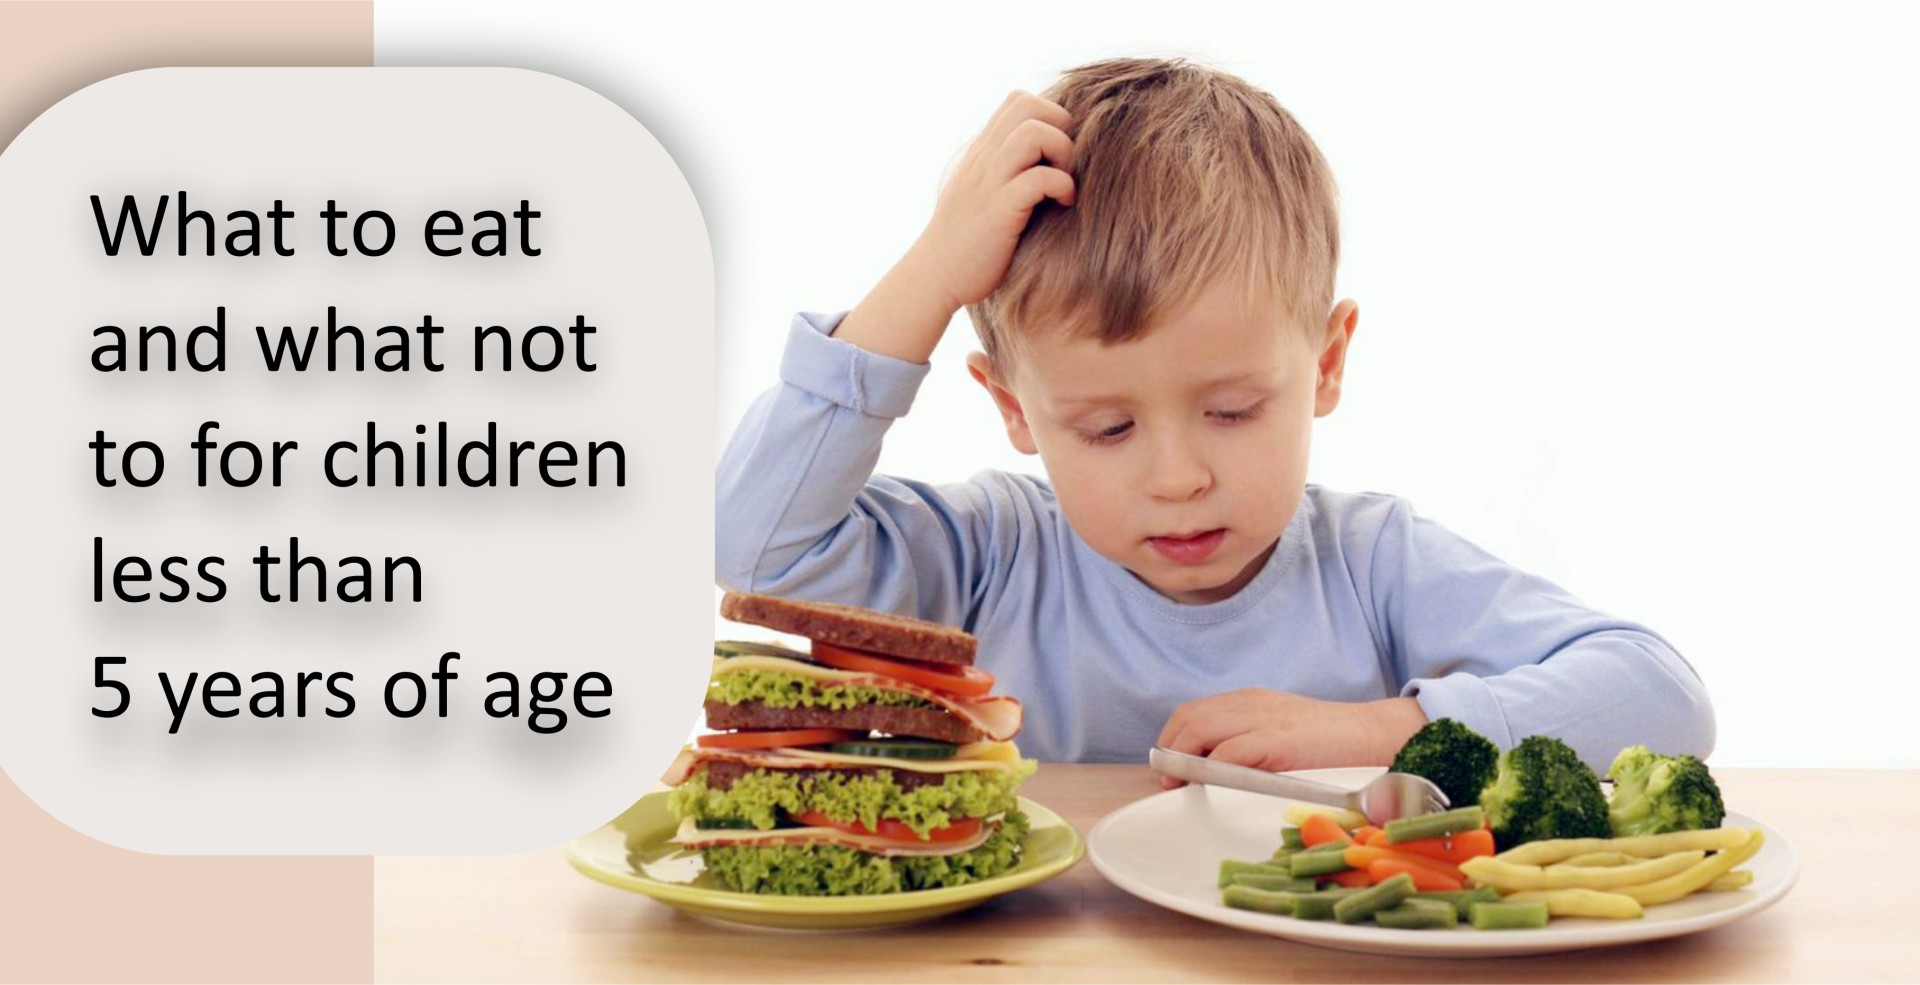 What to eat and what not to for children less than 5 years of age